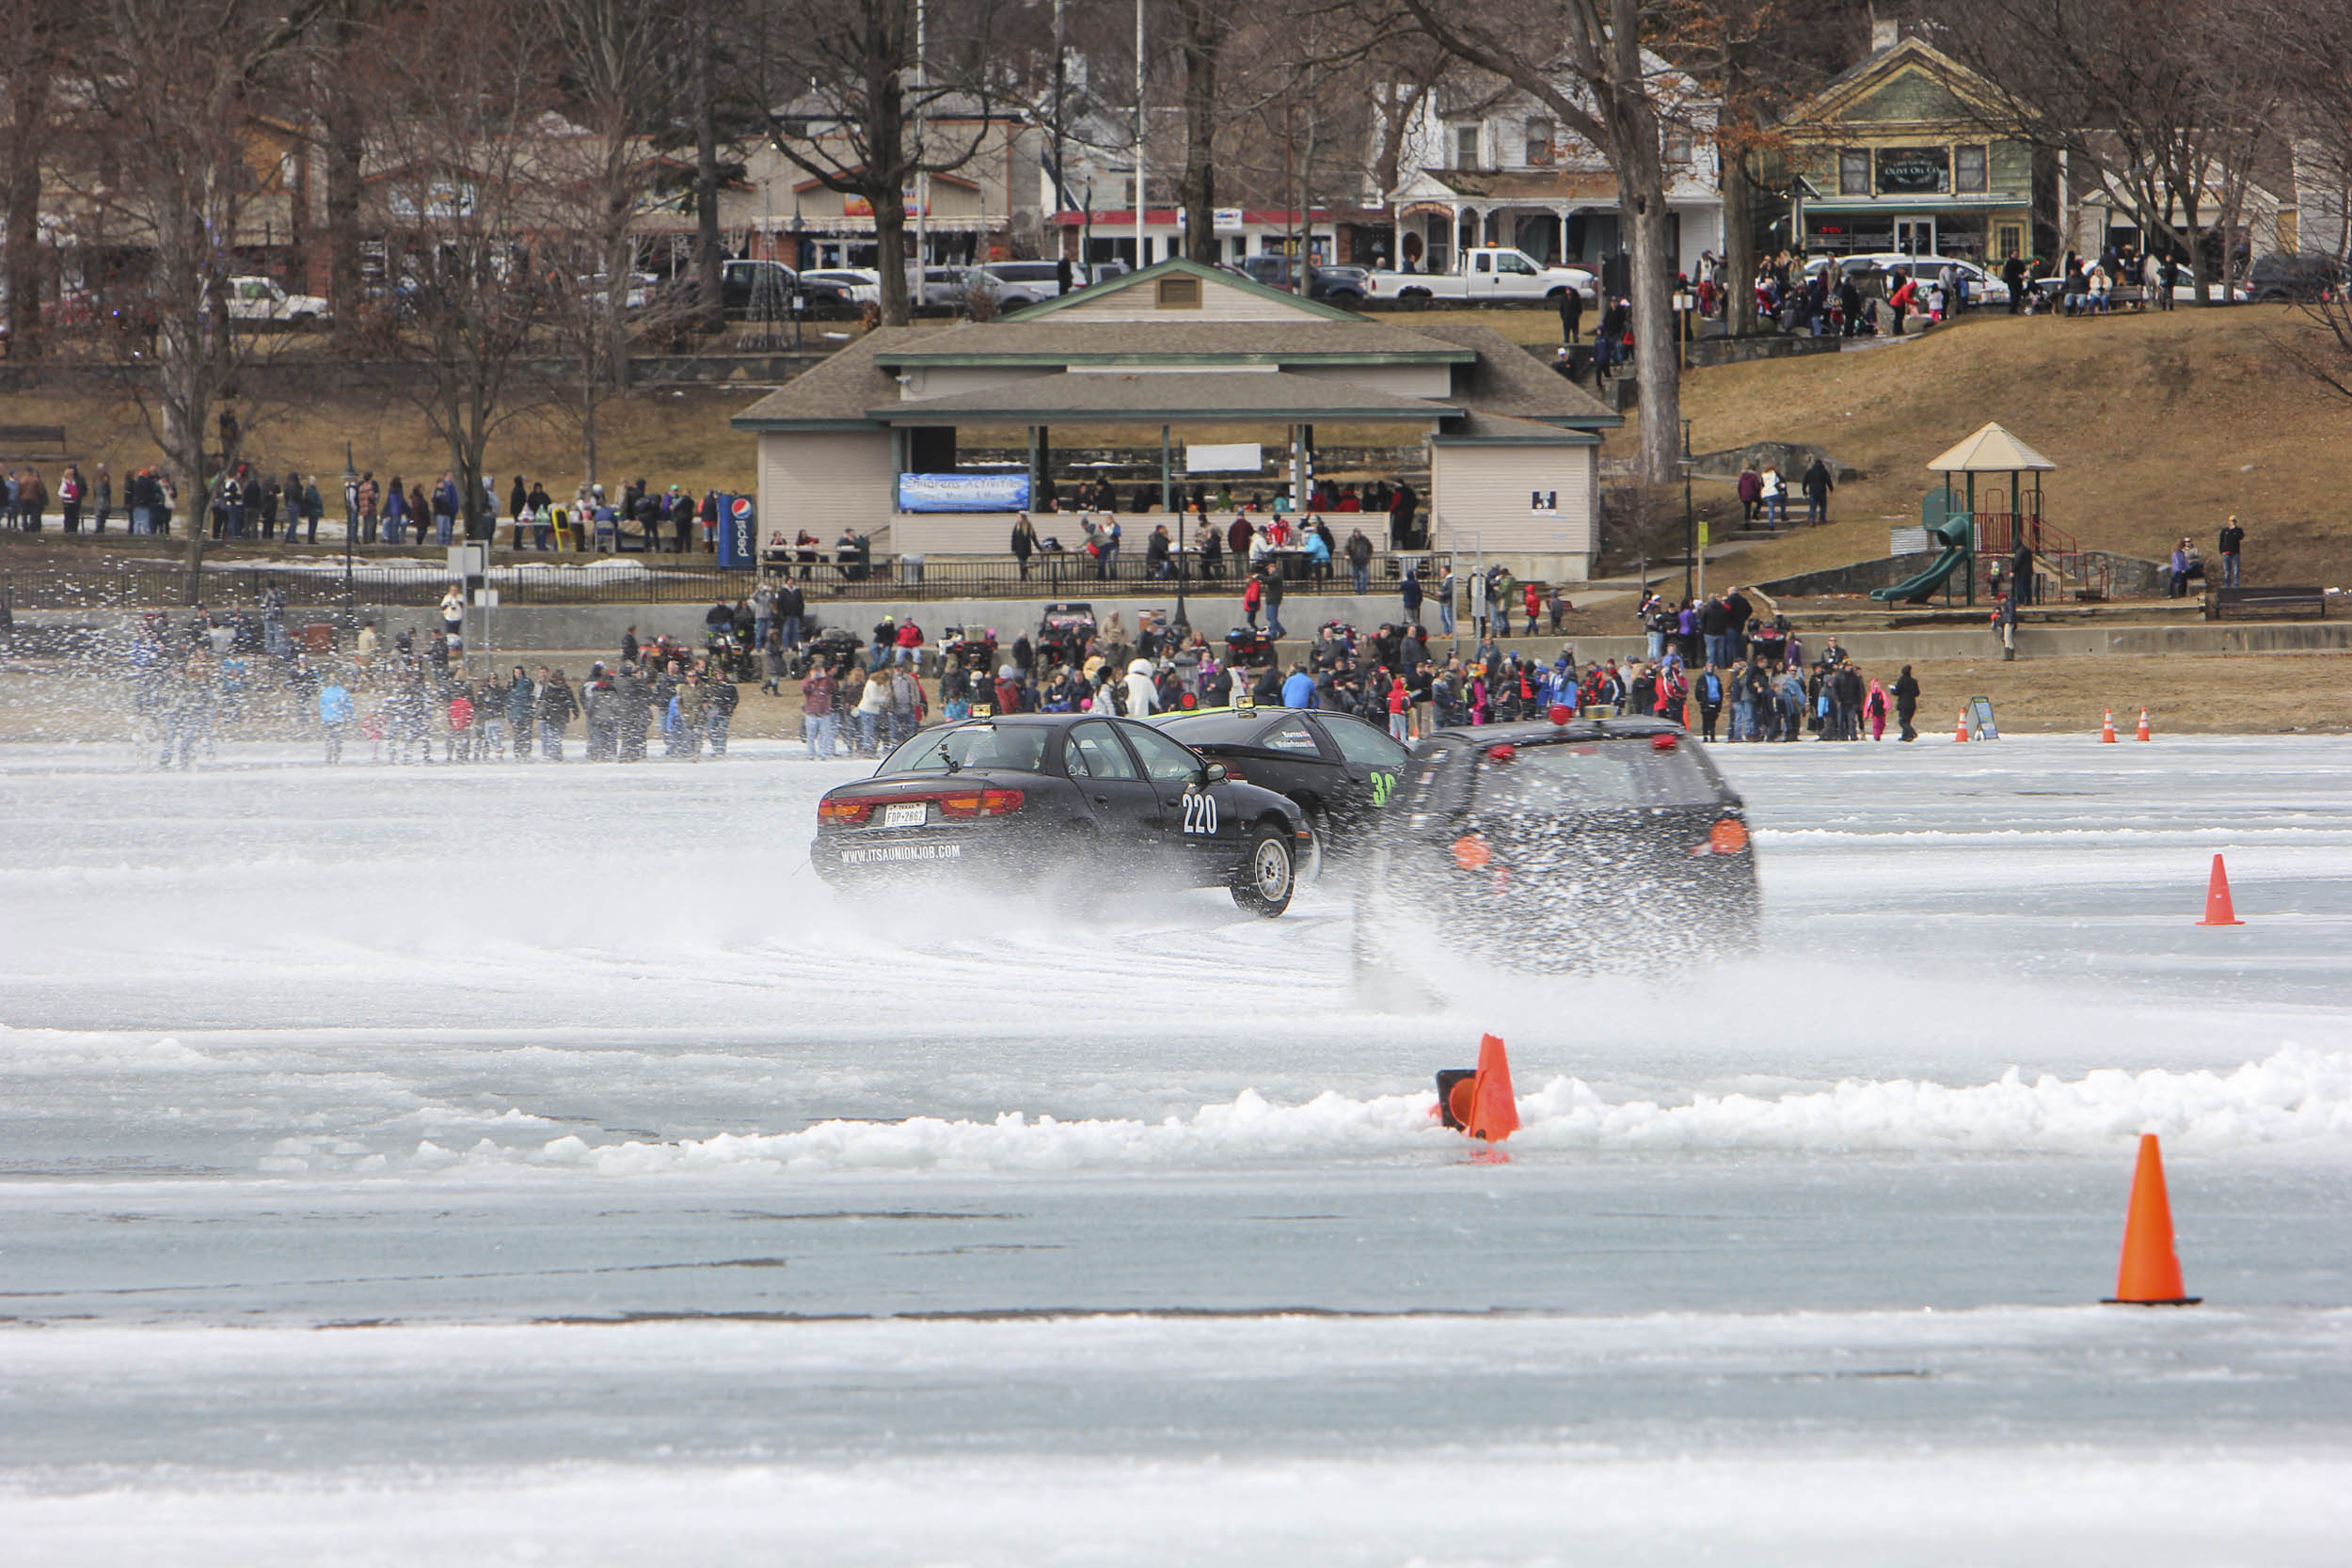 Ice racing event